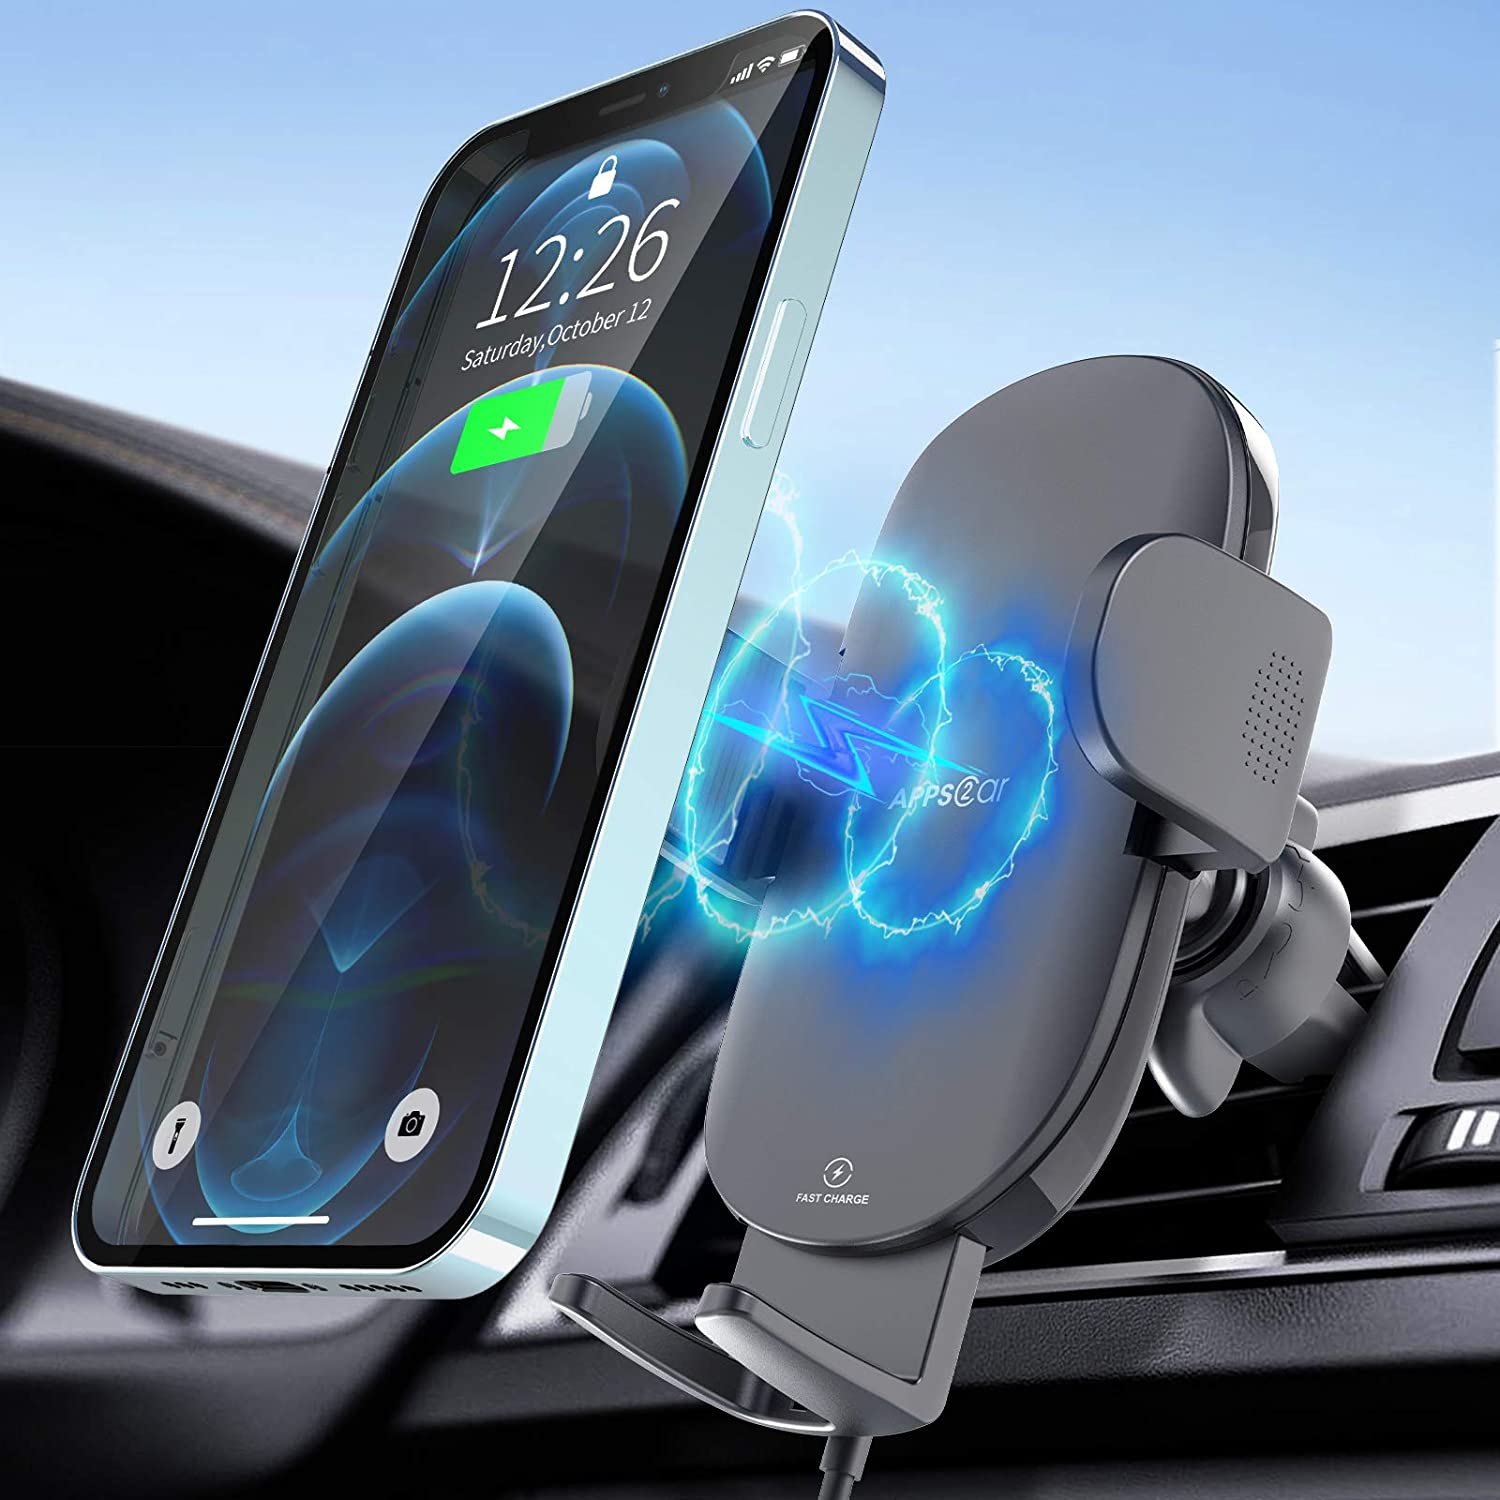 Wireless Car Charger, [2021 Upgraded] 15W Fast Charging Car Phone Holder, QC 3.0 Wireless Car Charger Mount, Air Vent Cell Phone Holder Cradle, Compatible with iPhone 12 11 XR XS, Samsung, Google, LG